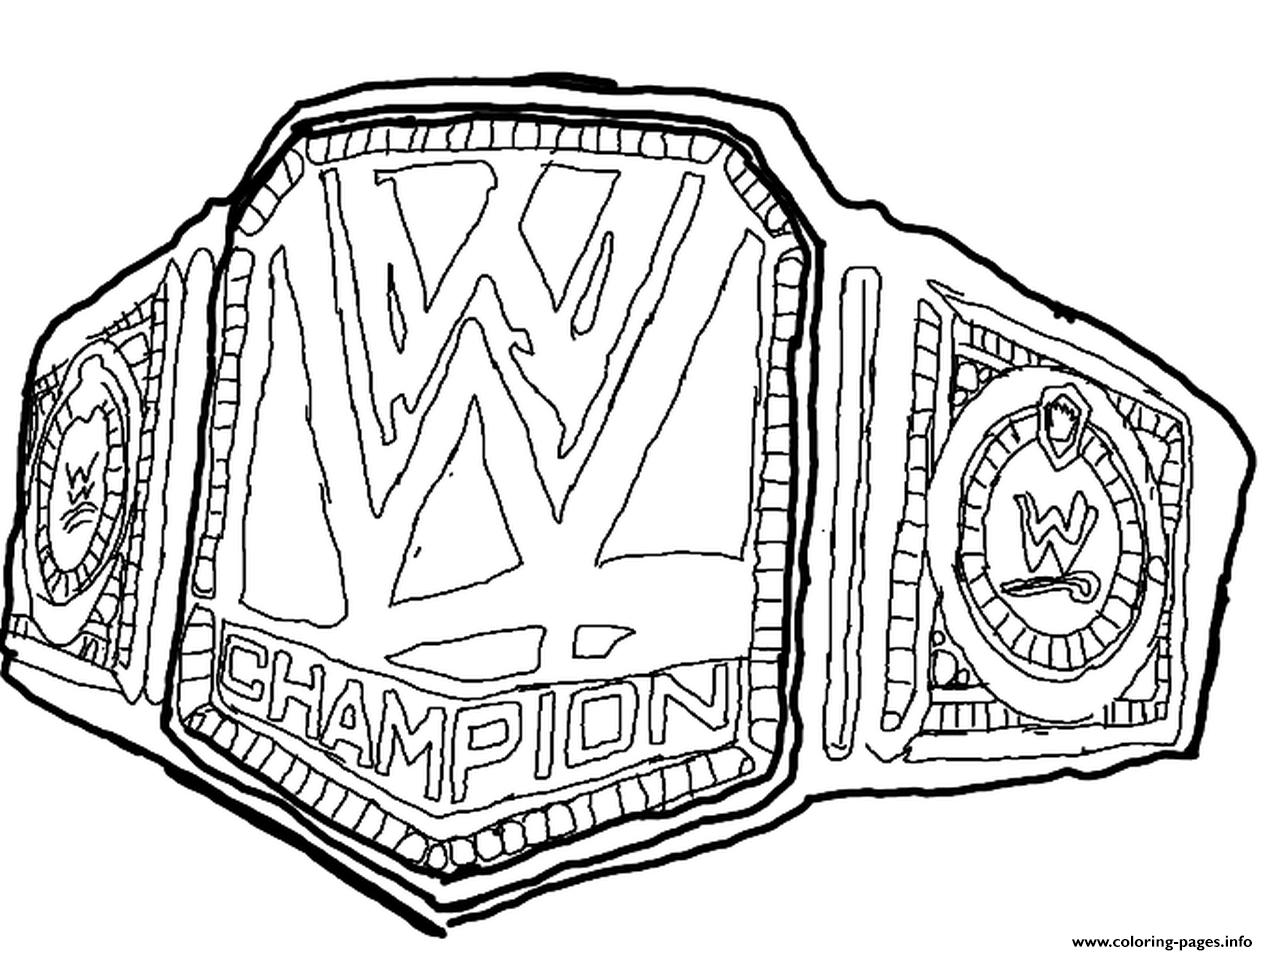 wwe belt coloring pages - Wwe Coloring Books